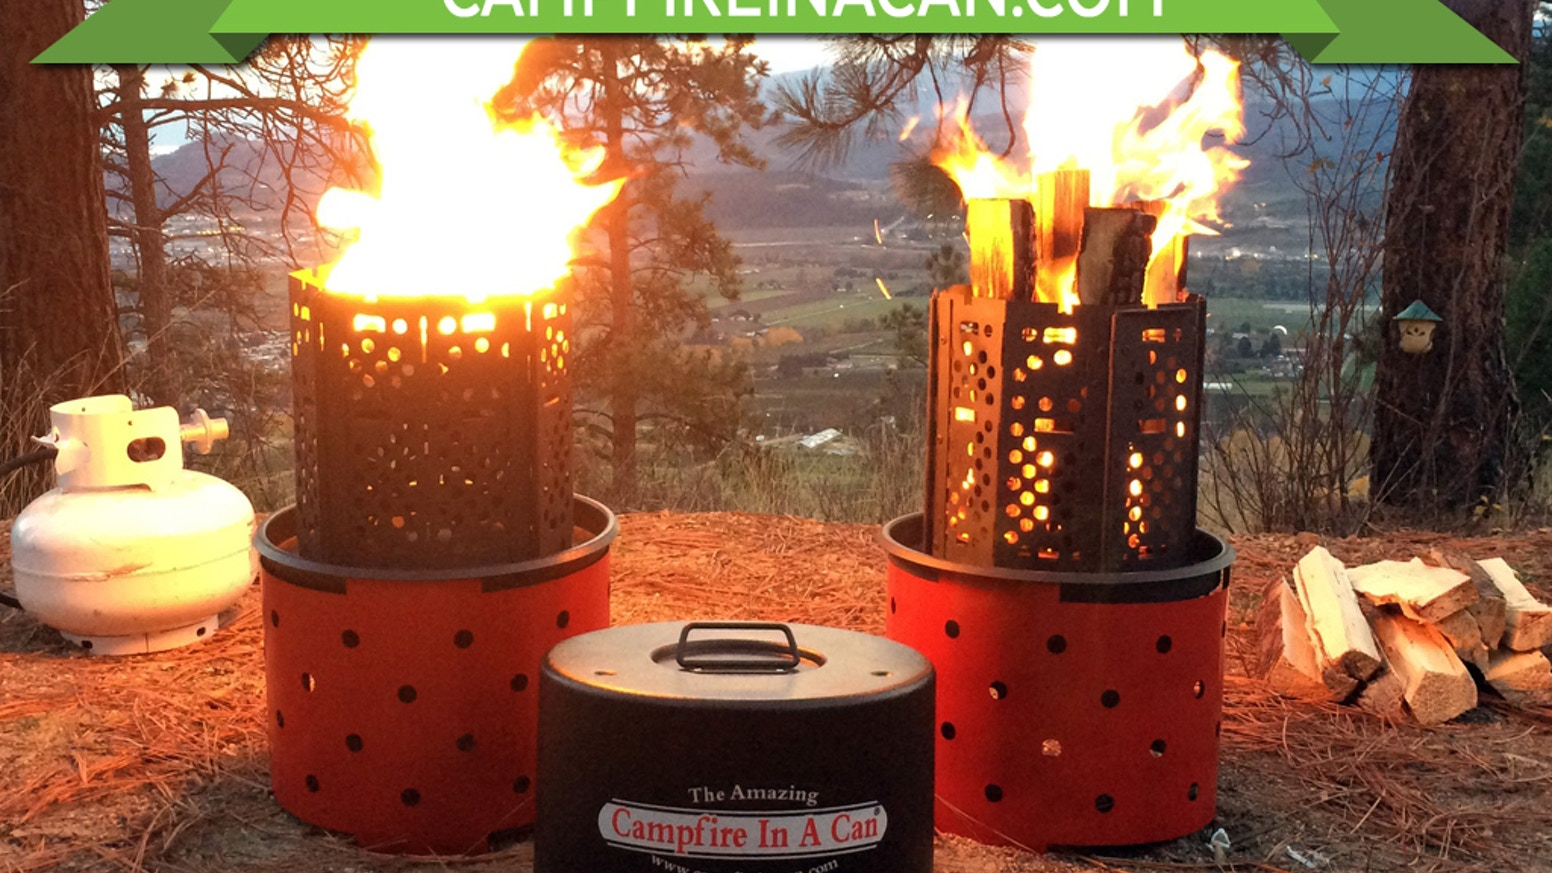 Fire up the good times with a portable campfire that burns wood or propane, enjoy a fire anytime anywhere. Great for camp cooking too!